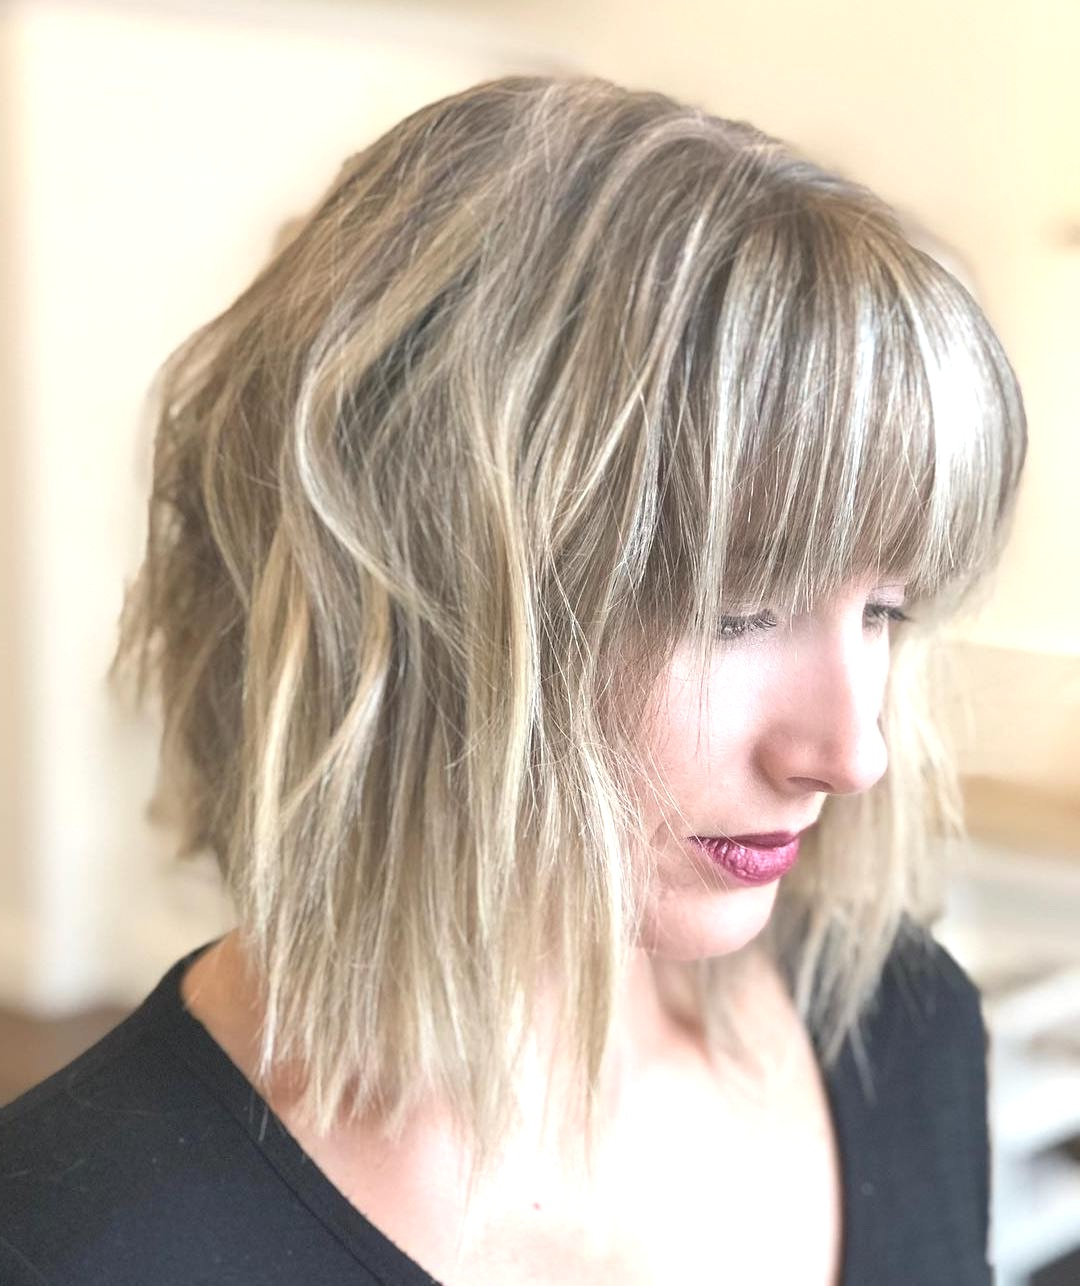 Hairstyles : Chopped Bob With Swoopy Bangs Cute 70 Fabulous Choppy Regarding Popular Cute Chopped Bob Hairstyles With Swoopy Bangs (View 5 of 20)